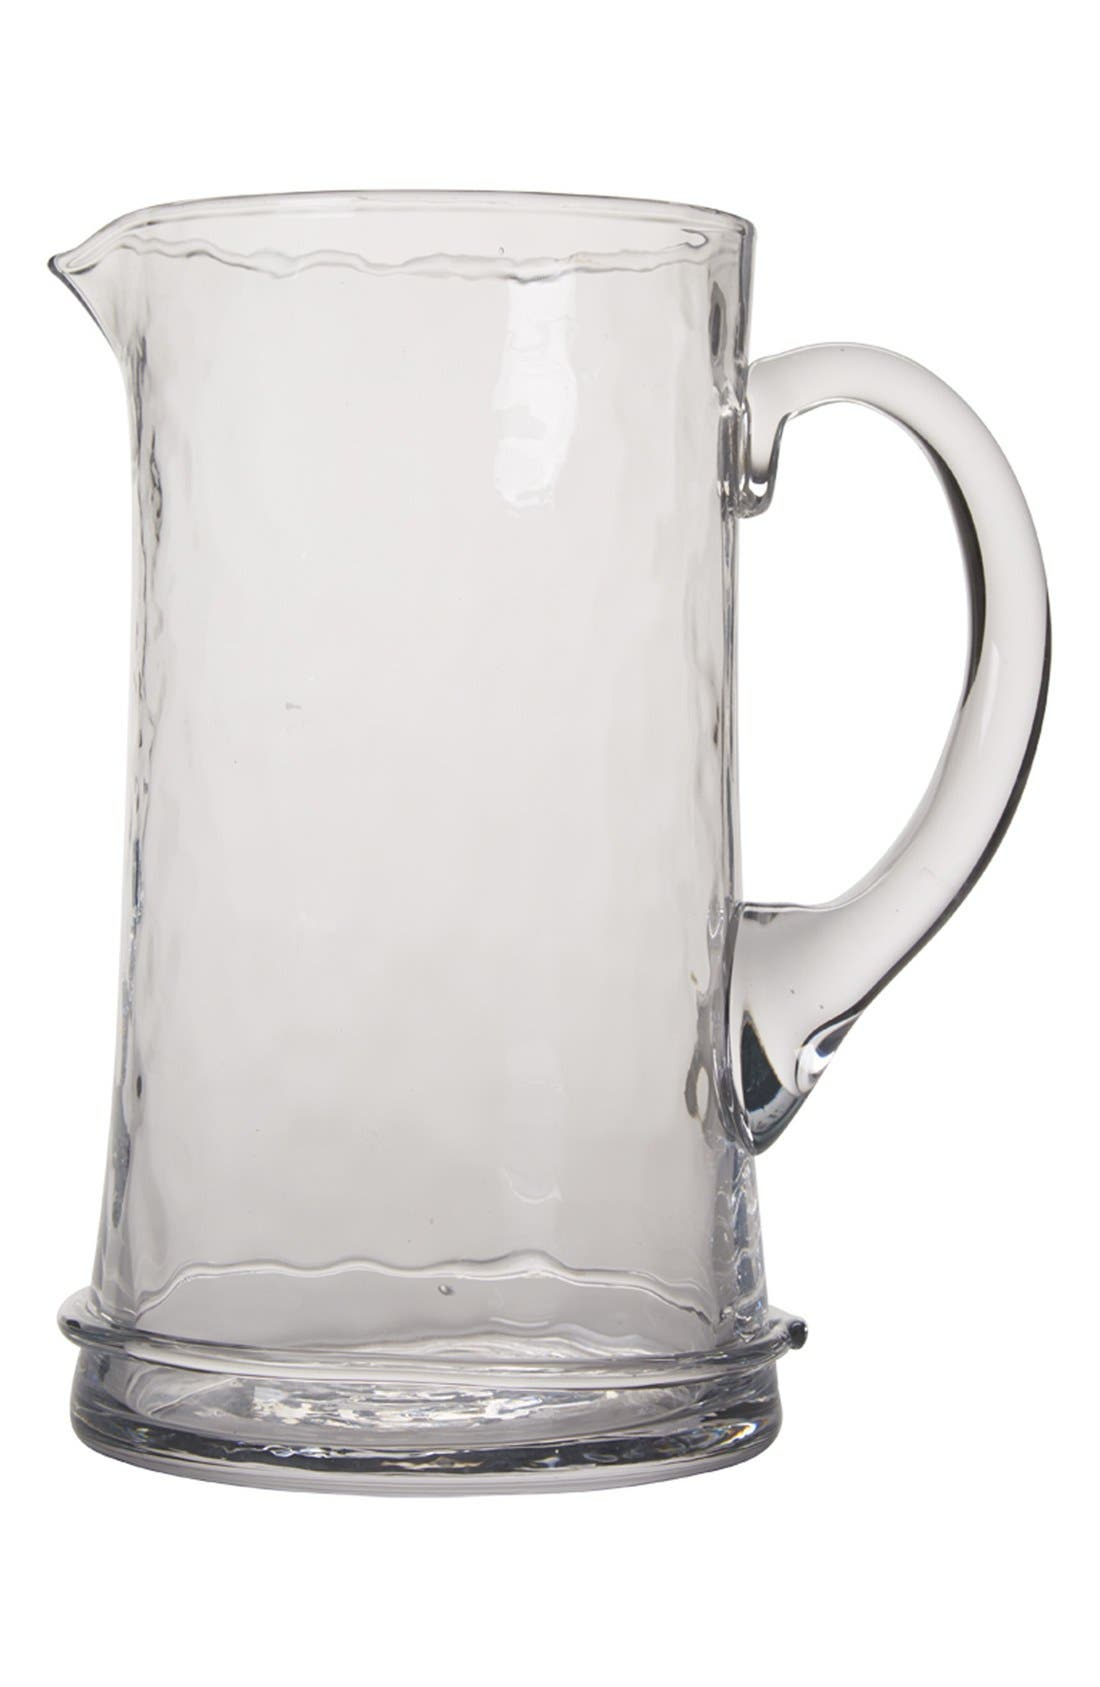 'Carine' Glass Pitcher,                             Main thumbnail 1, color,                             WHITE